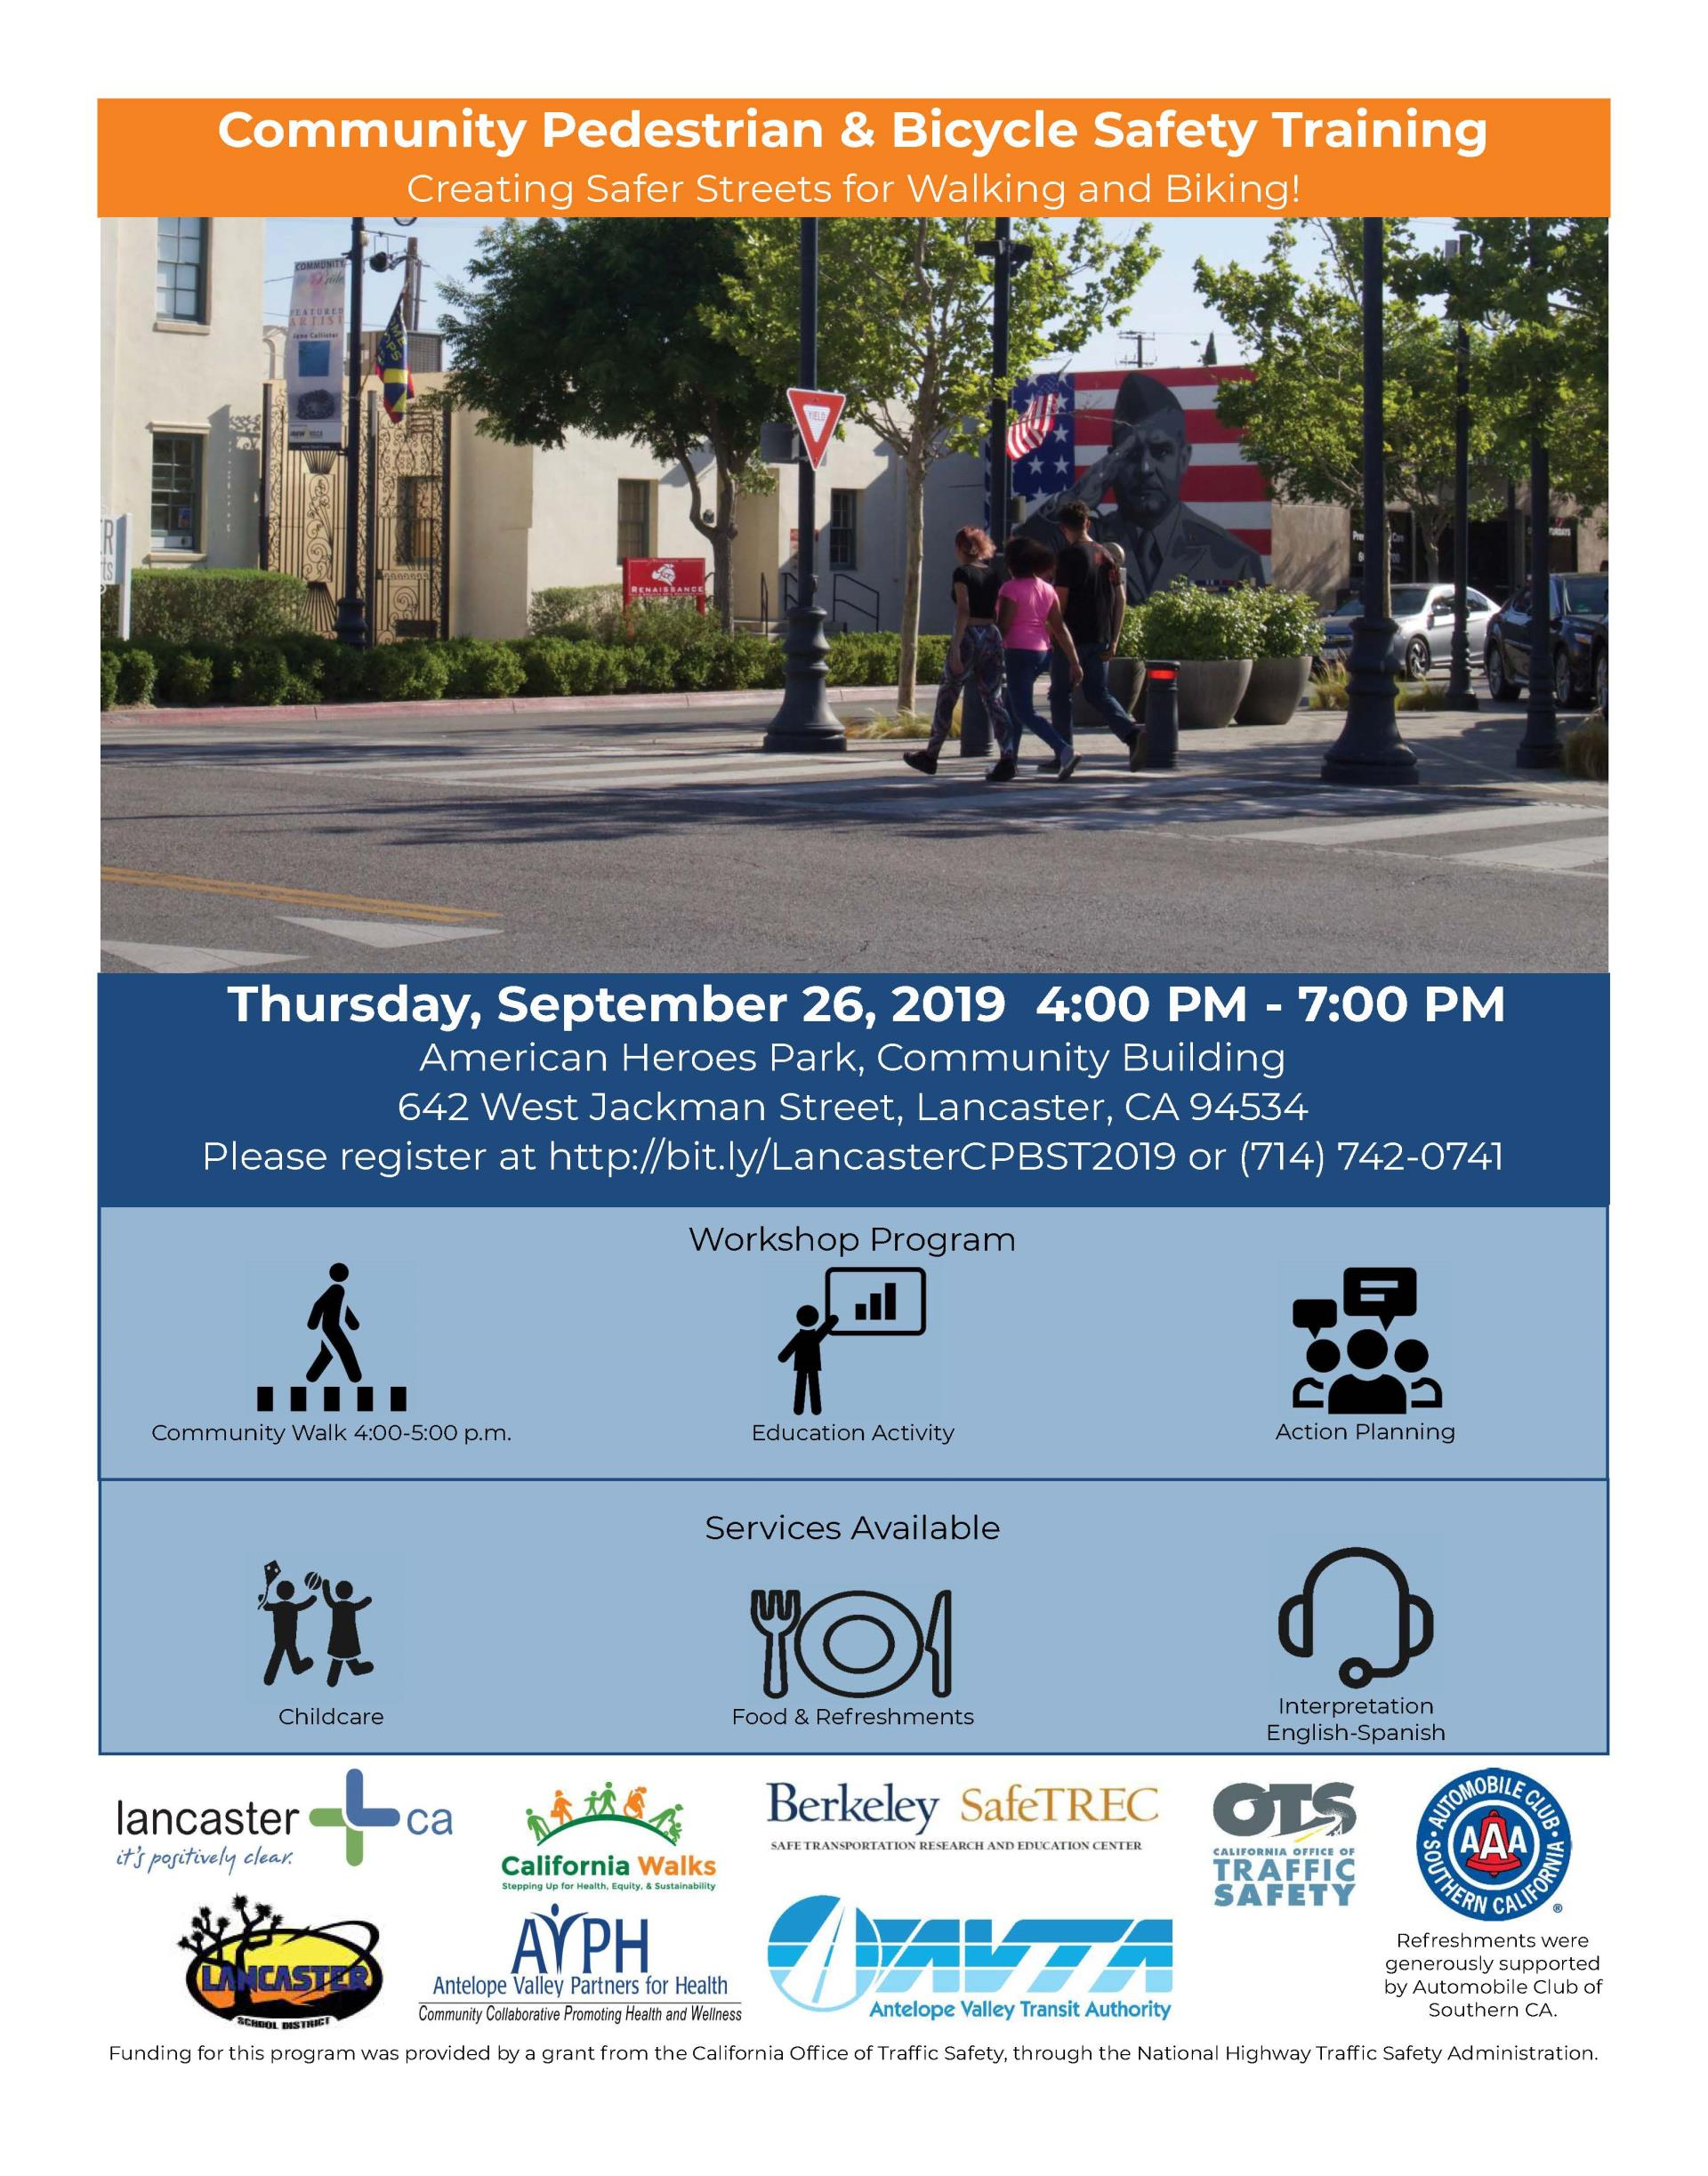 Community Pedestrian & Bicycle Safety Training